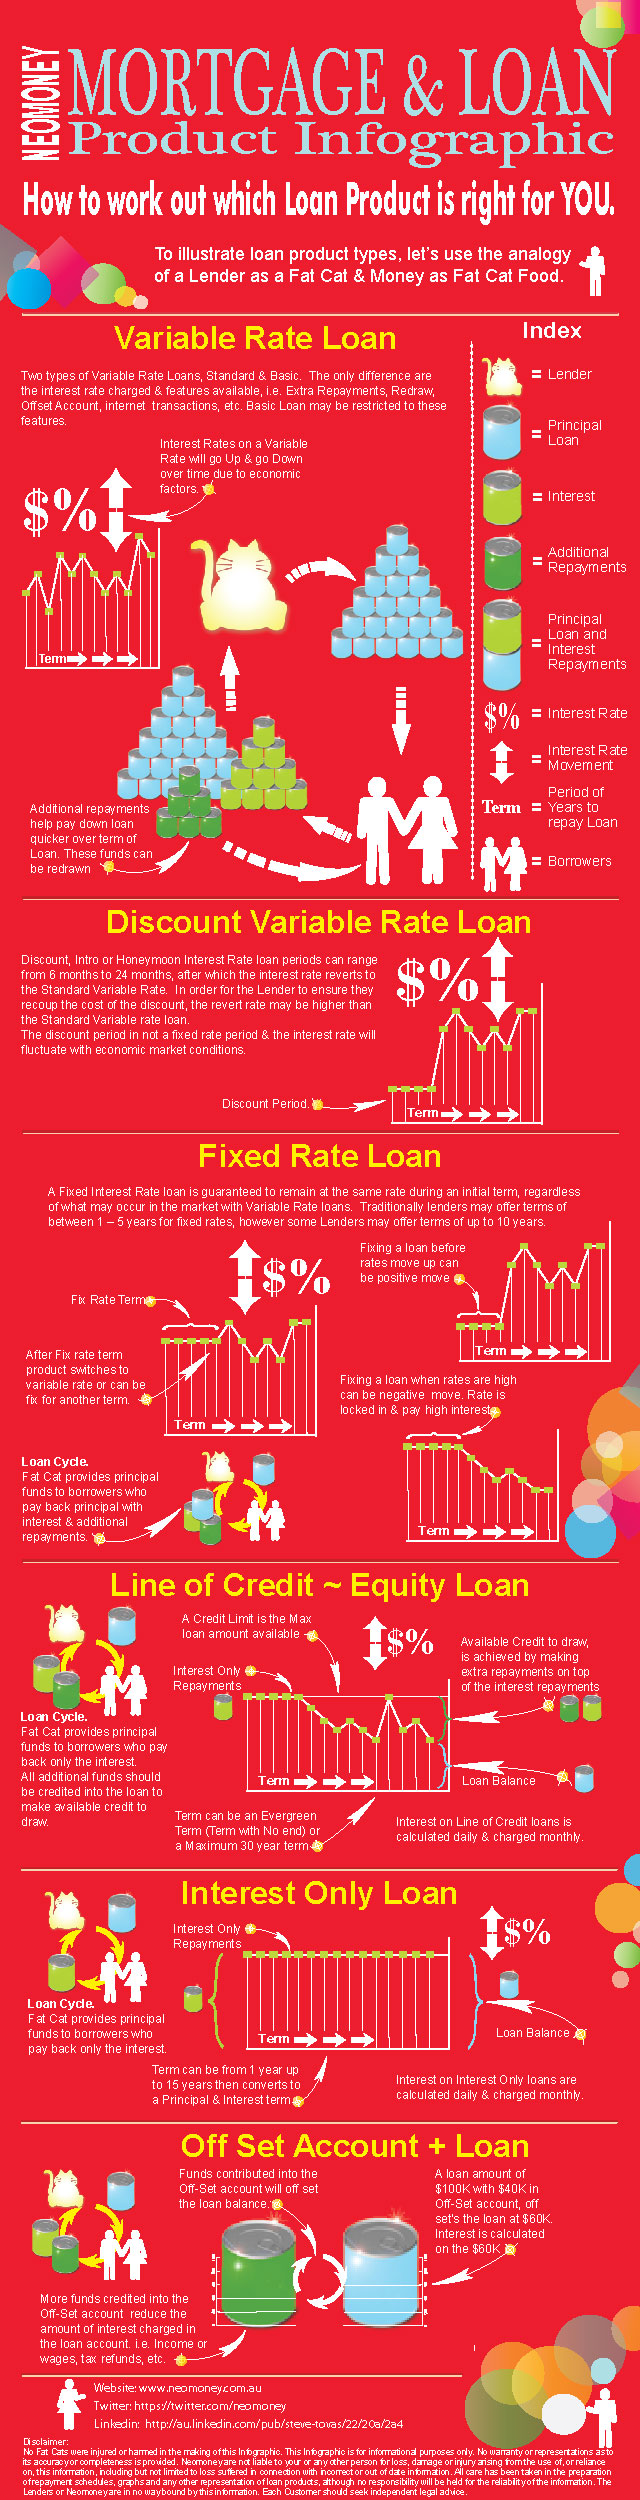 Mortgage and Loan